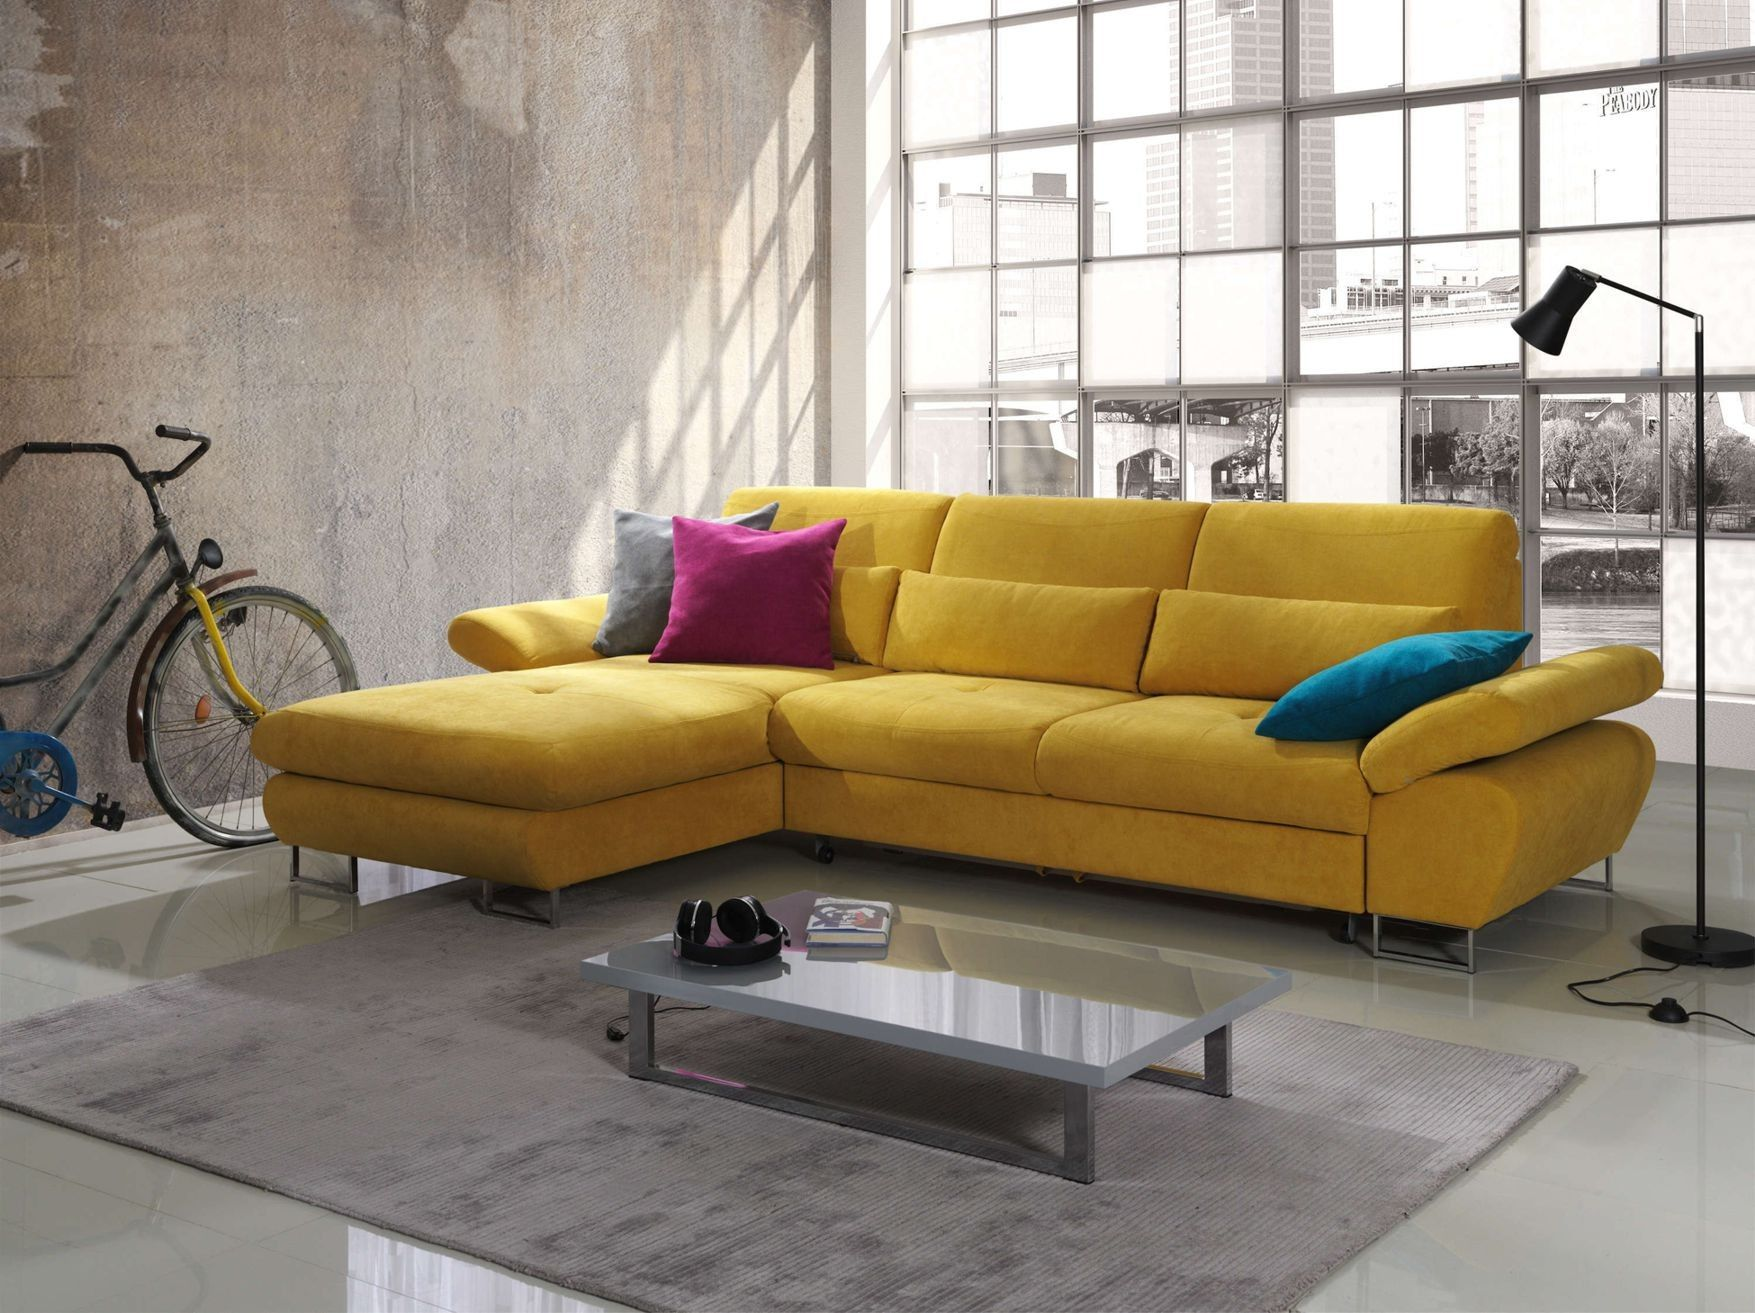 representation of sectional sofa sleepers for better sleep quality and comfort - Yellow Couch